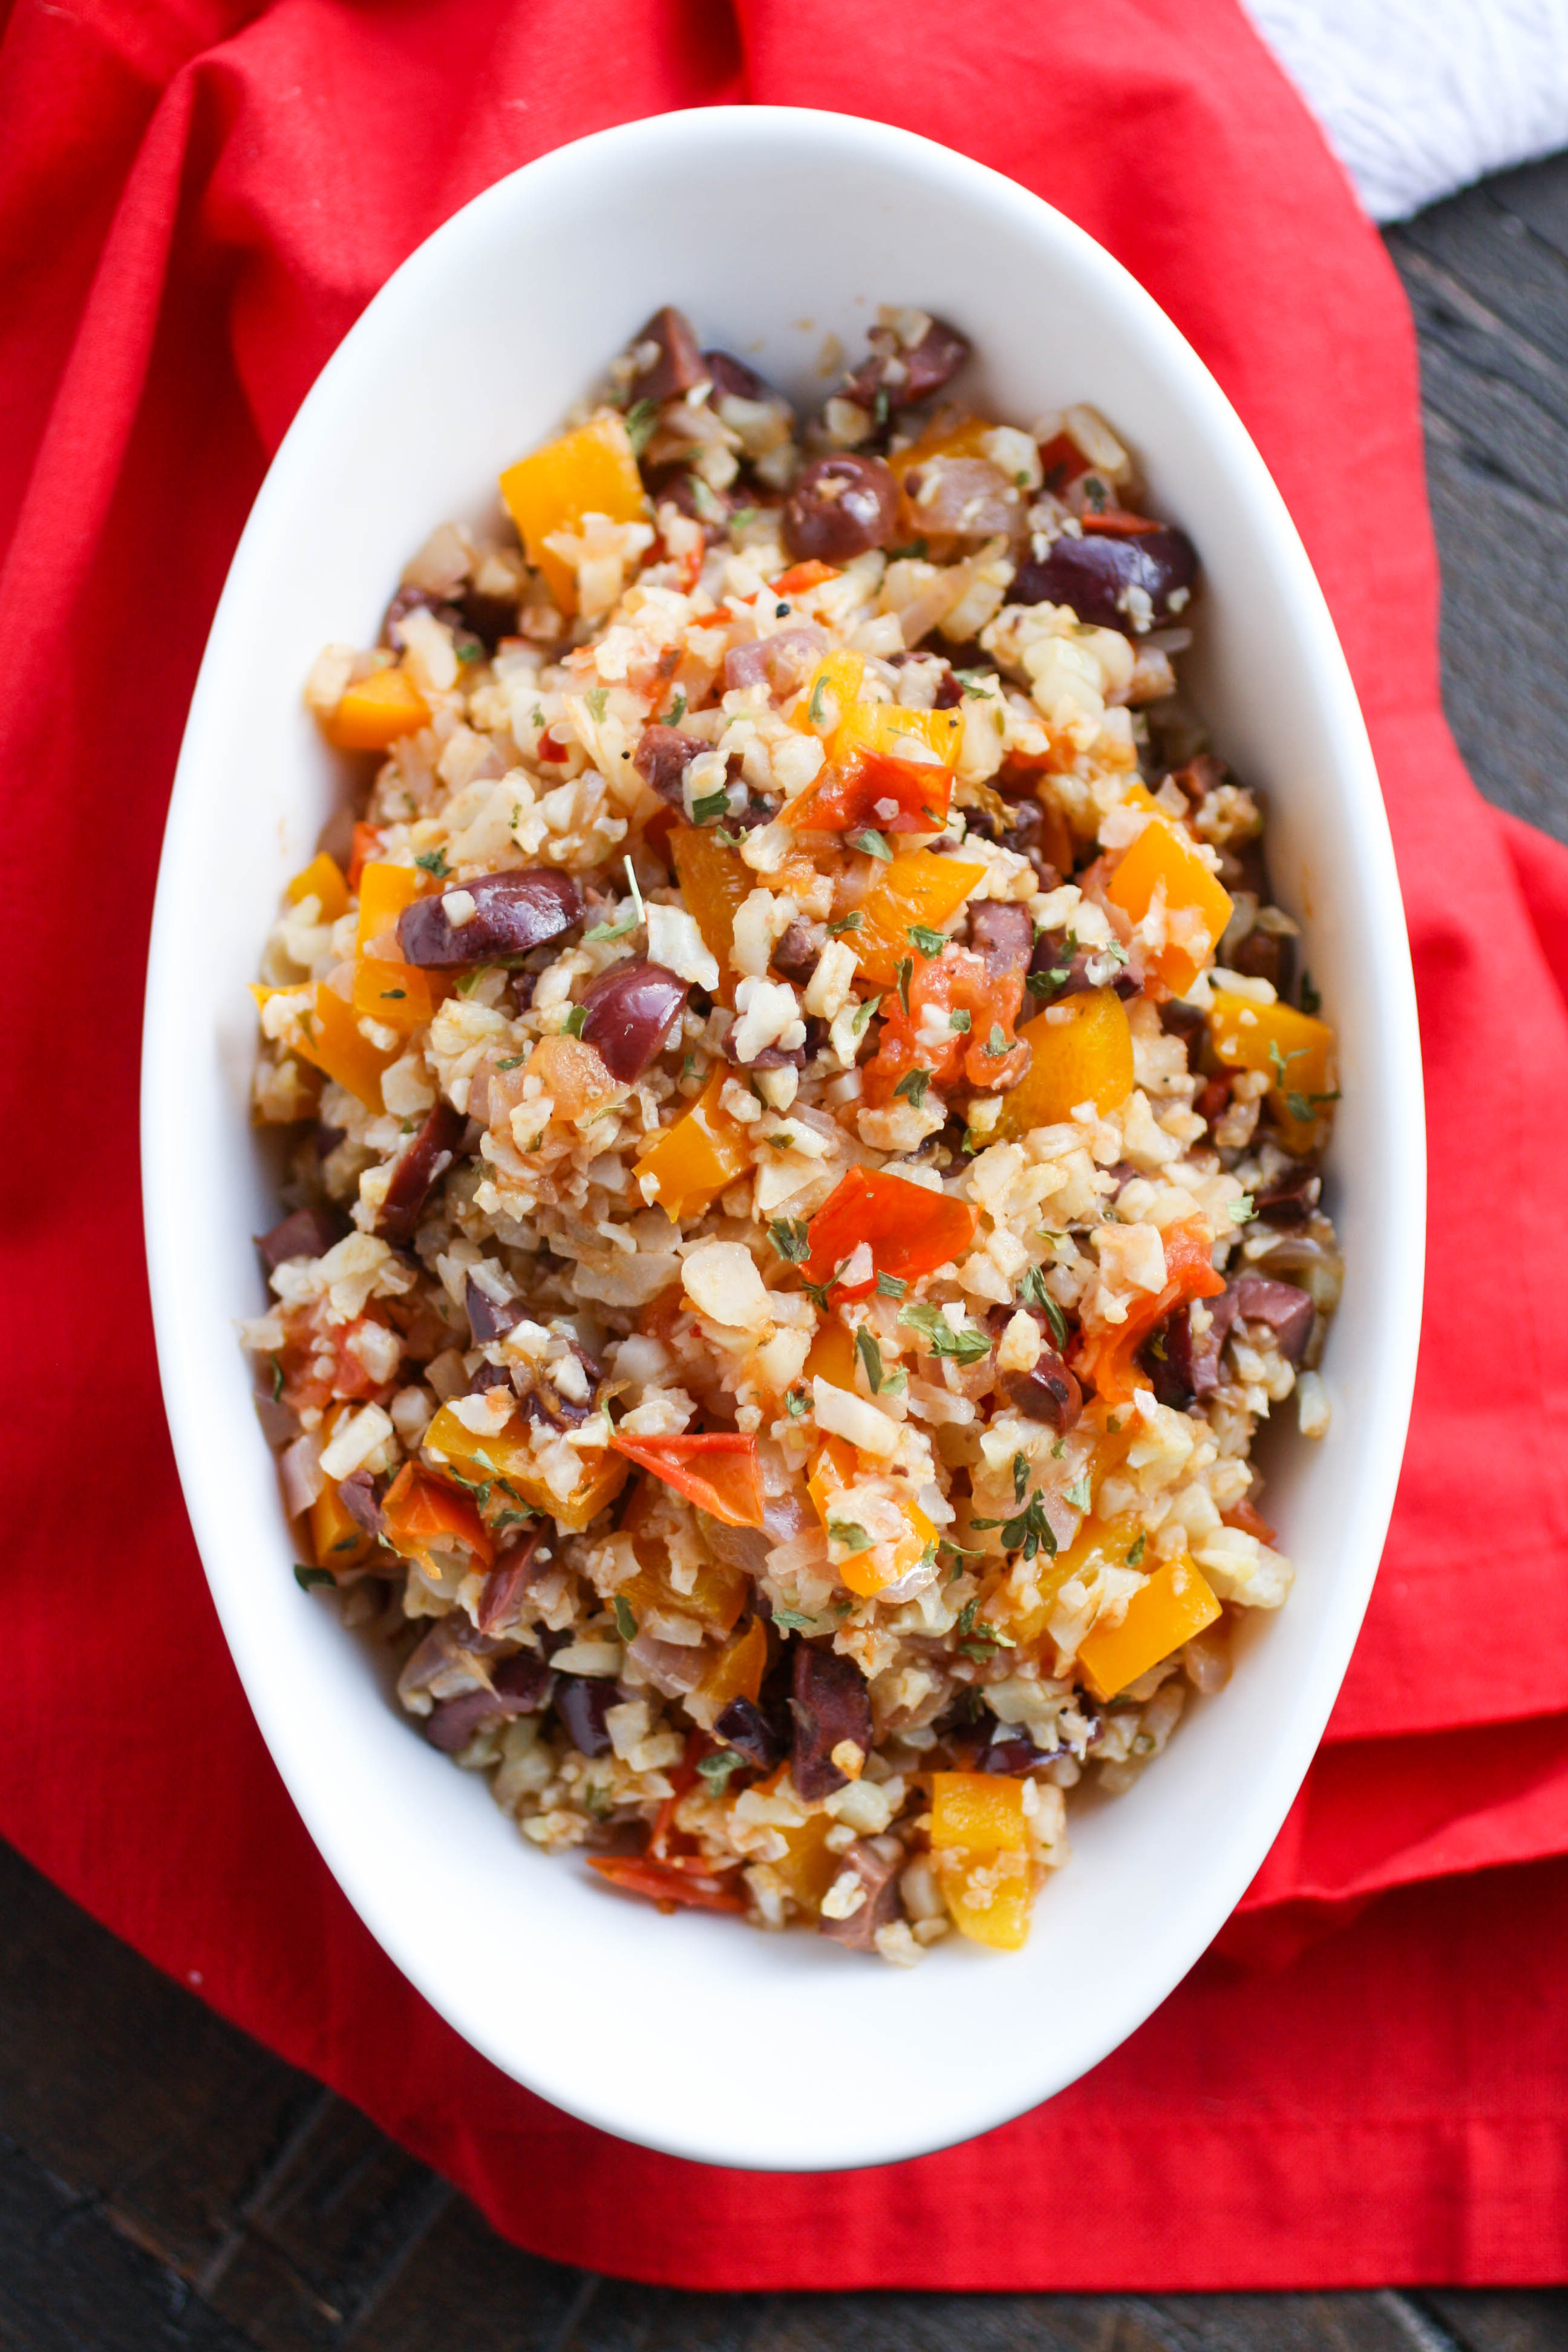 Mediterranean Cauliflower Rice is a colorful and flavorful dish perfect for any meal. This cauliflower rice dish is from the American Diabetes Association and it's delicious!